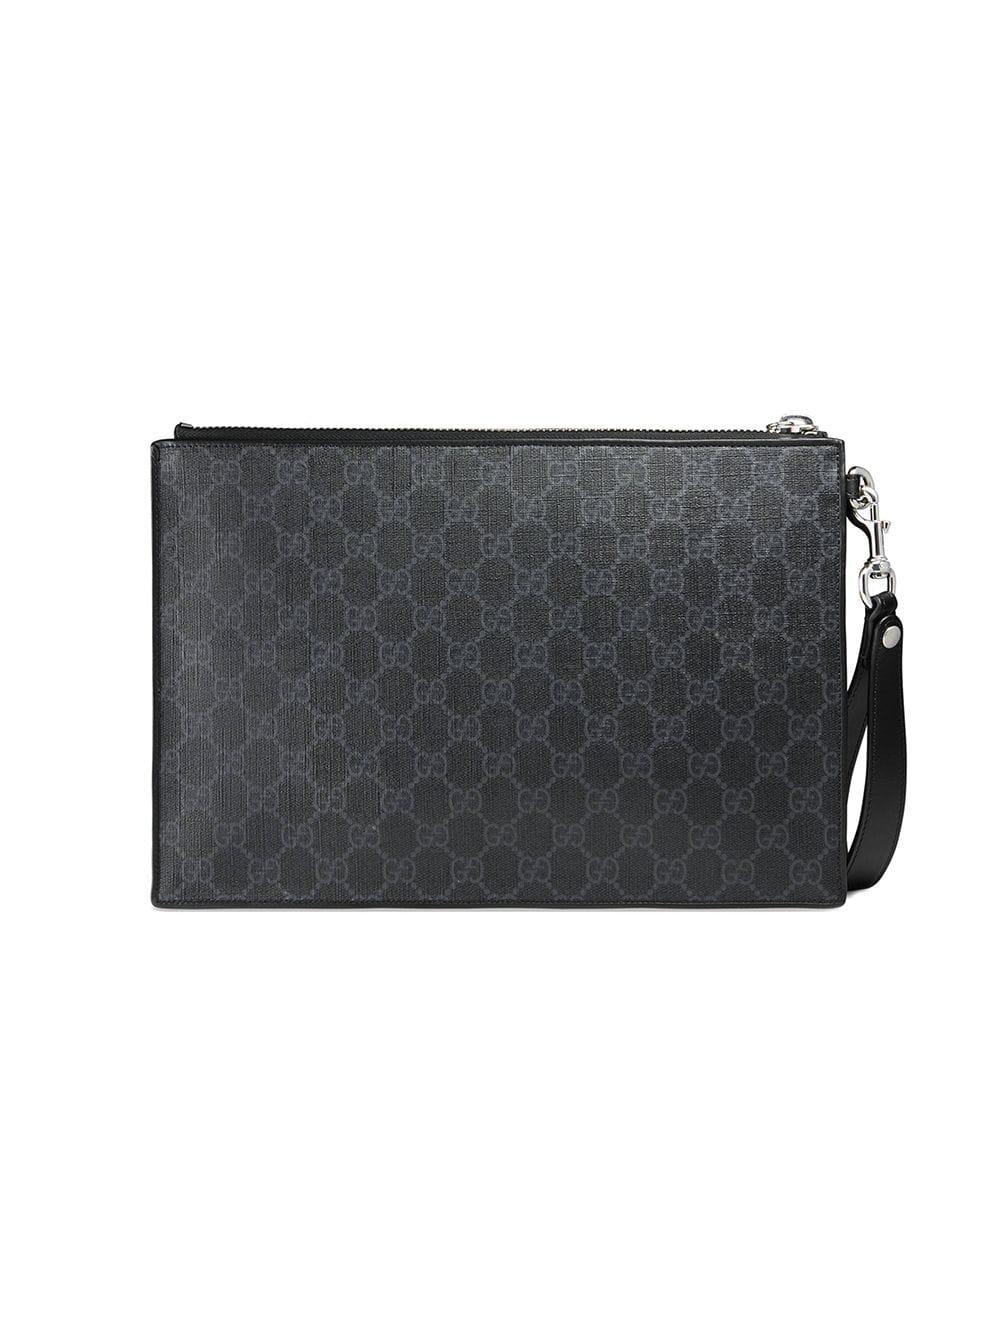 b5fde2aaa461f1 Gucci - Black Night Courrier GG Supreme Pouch for Men - Lyst. View  fullscreen